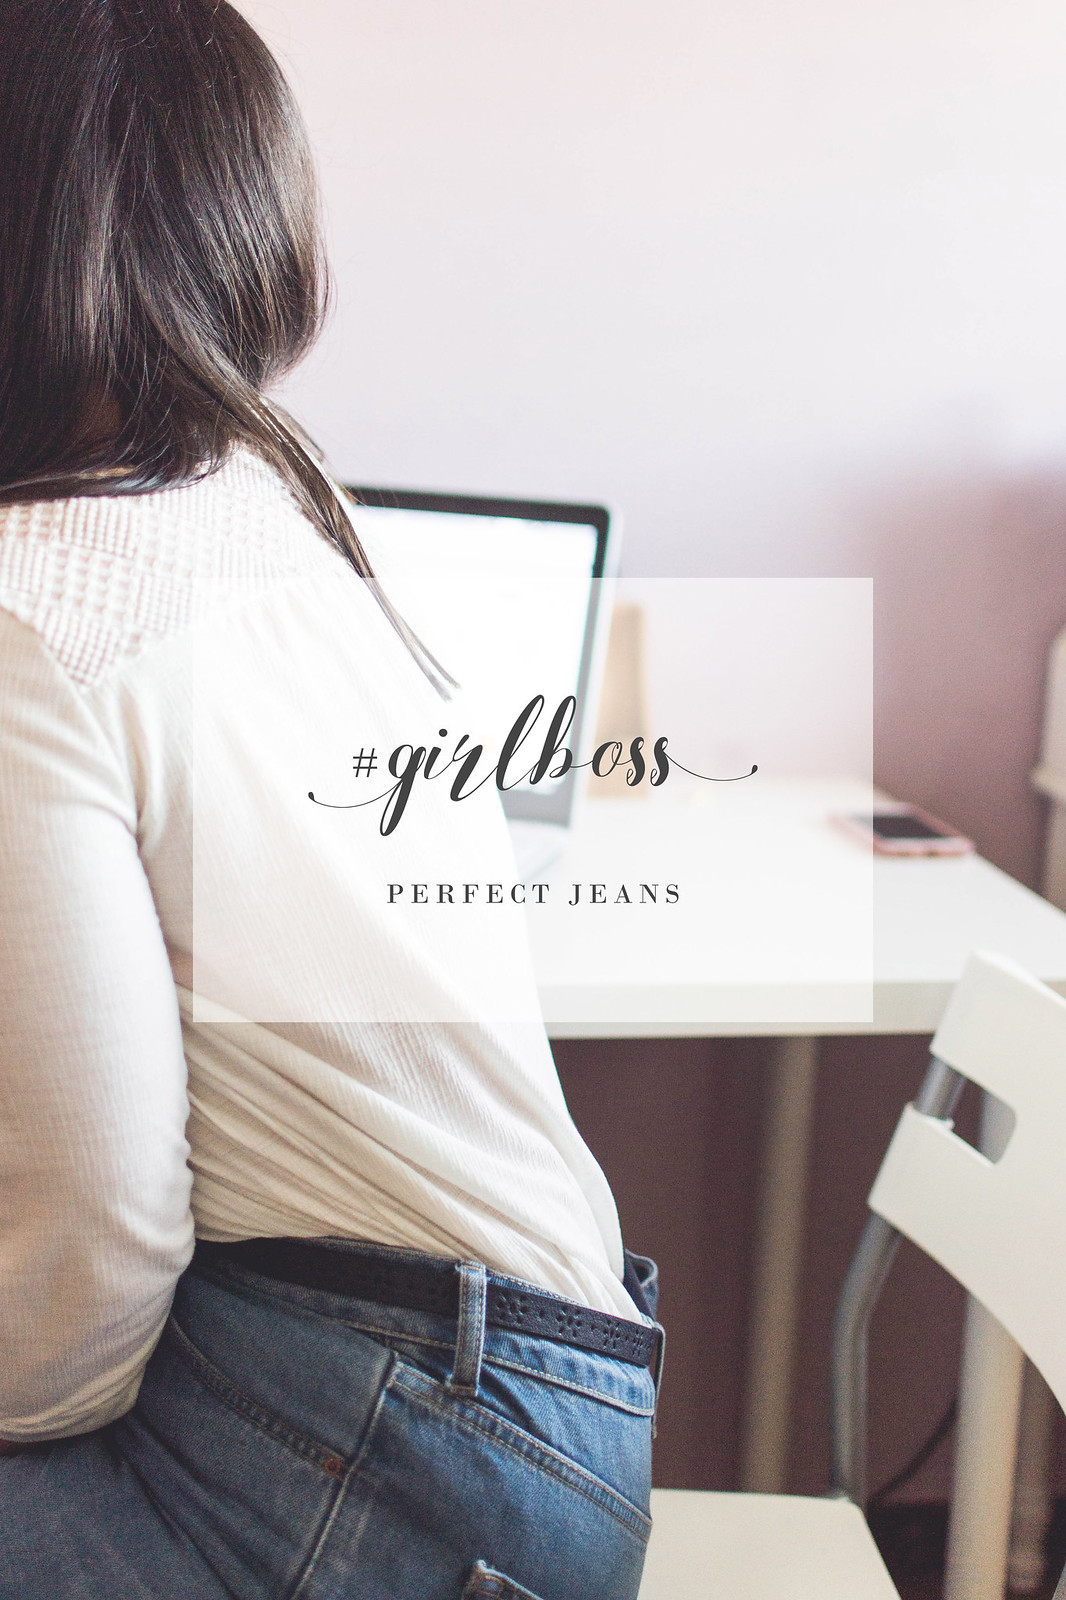 #Girlboss Perfect Jeans